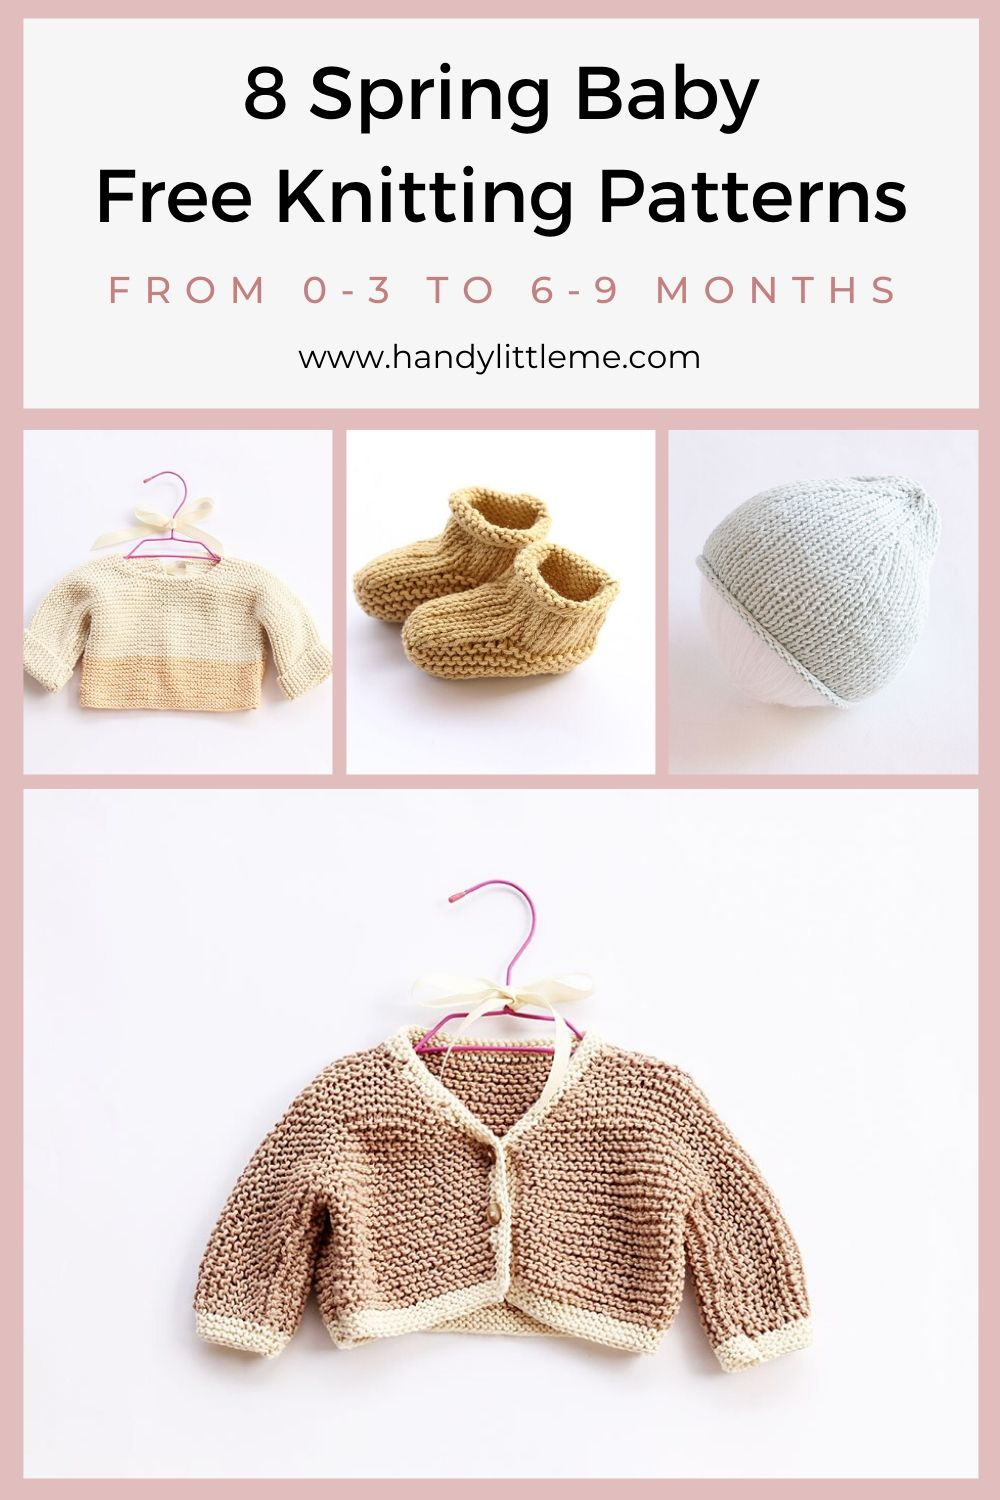 8 Spring baby knitting patterns